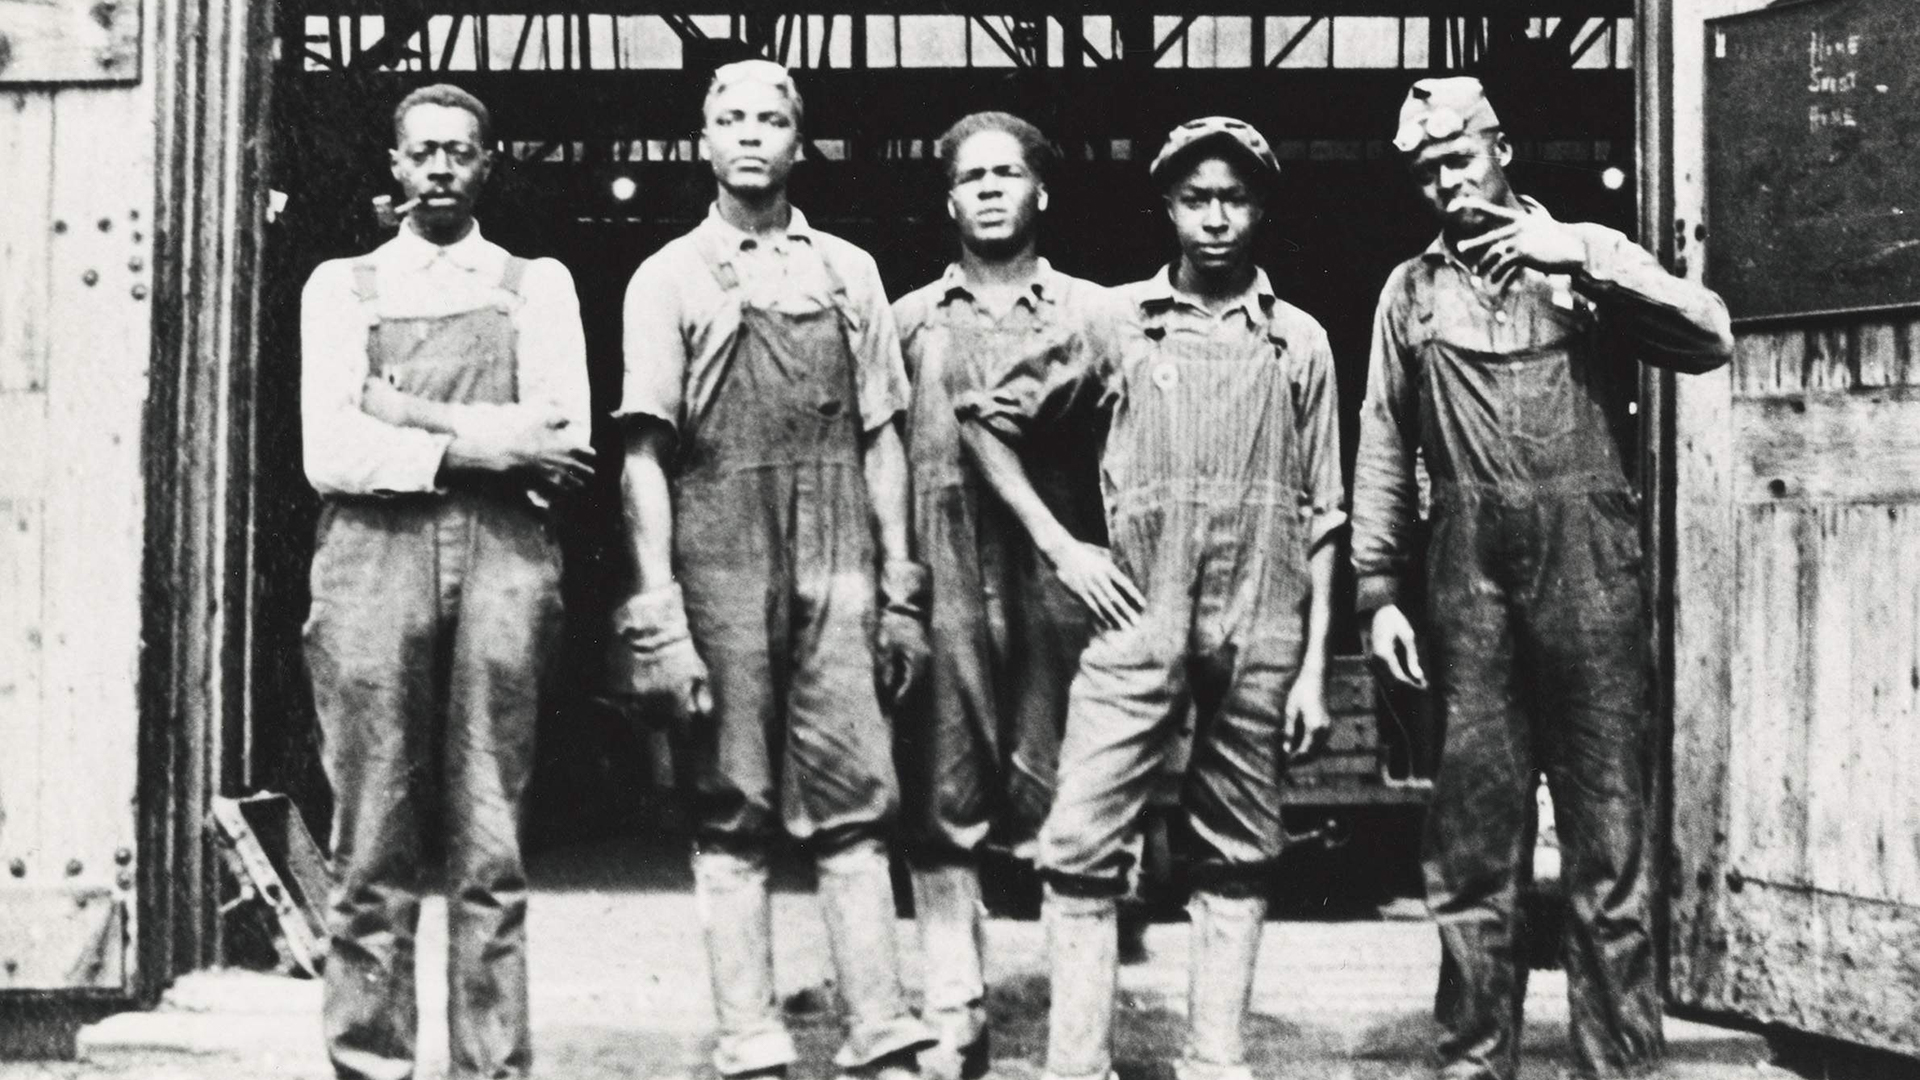 5 workmen stand in front of a warehouse.